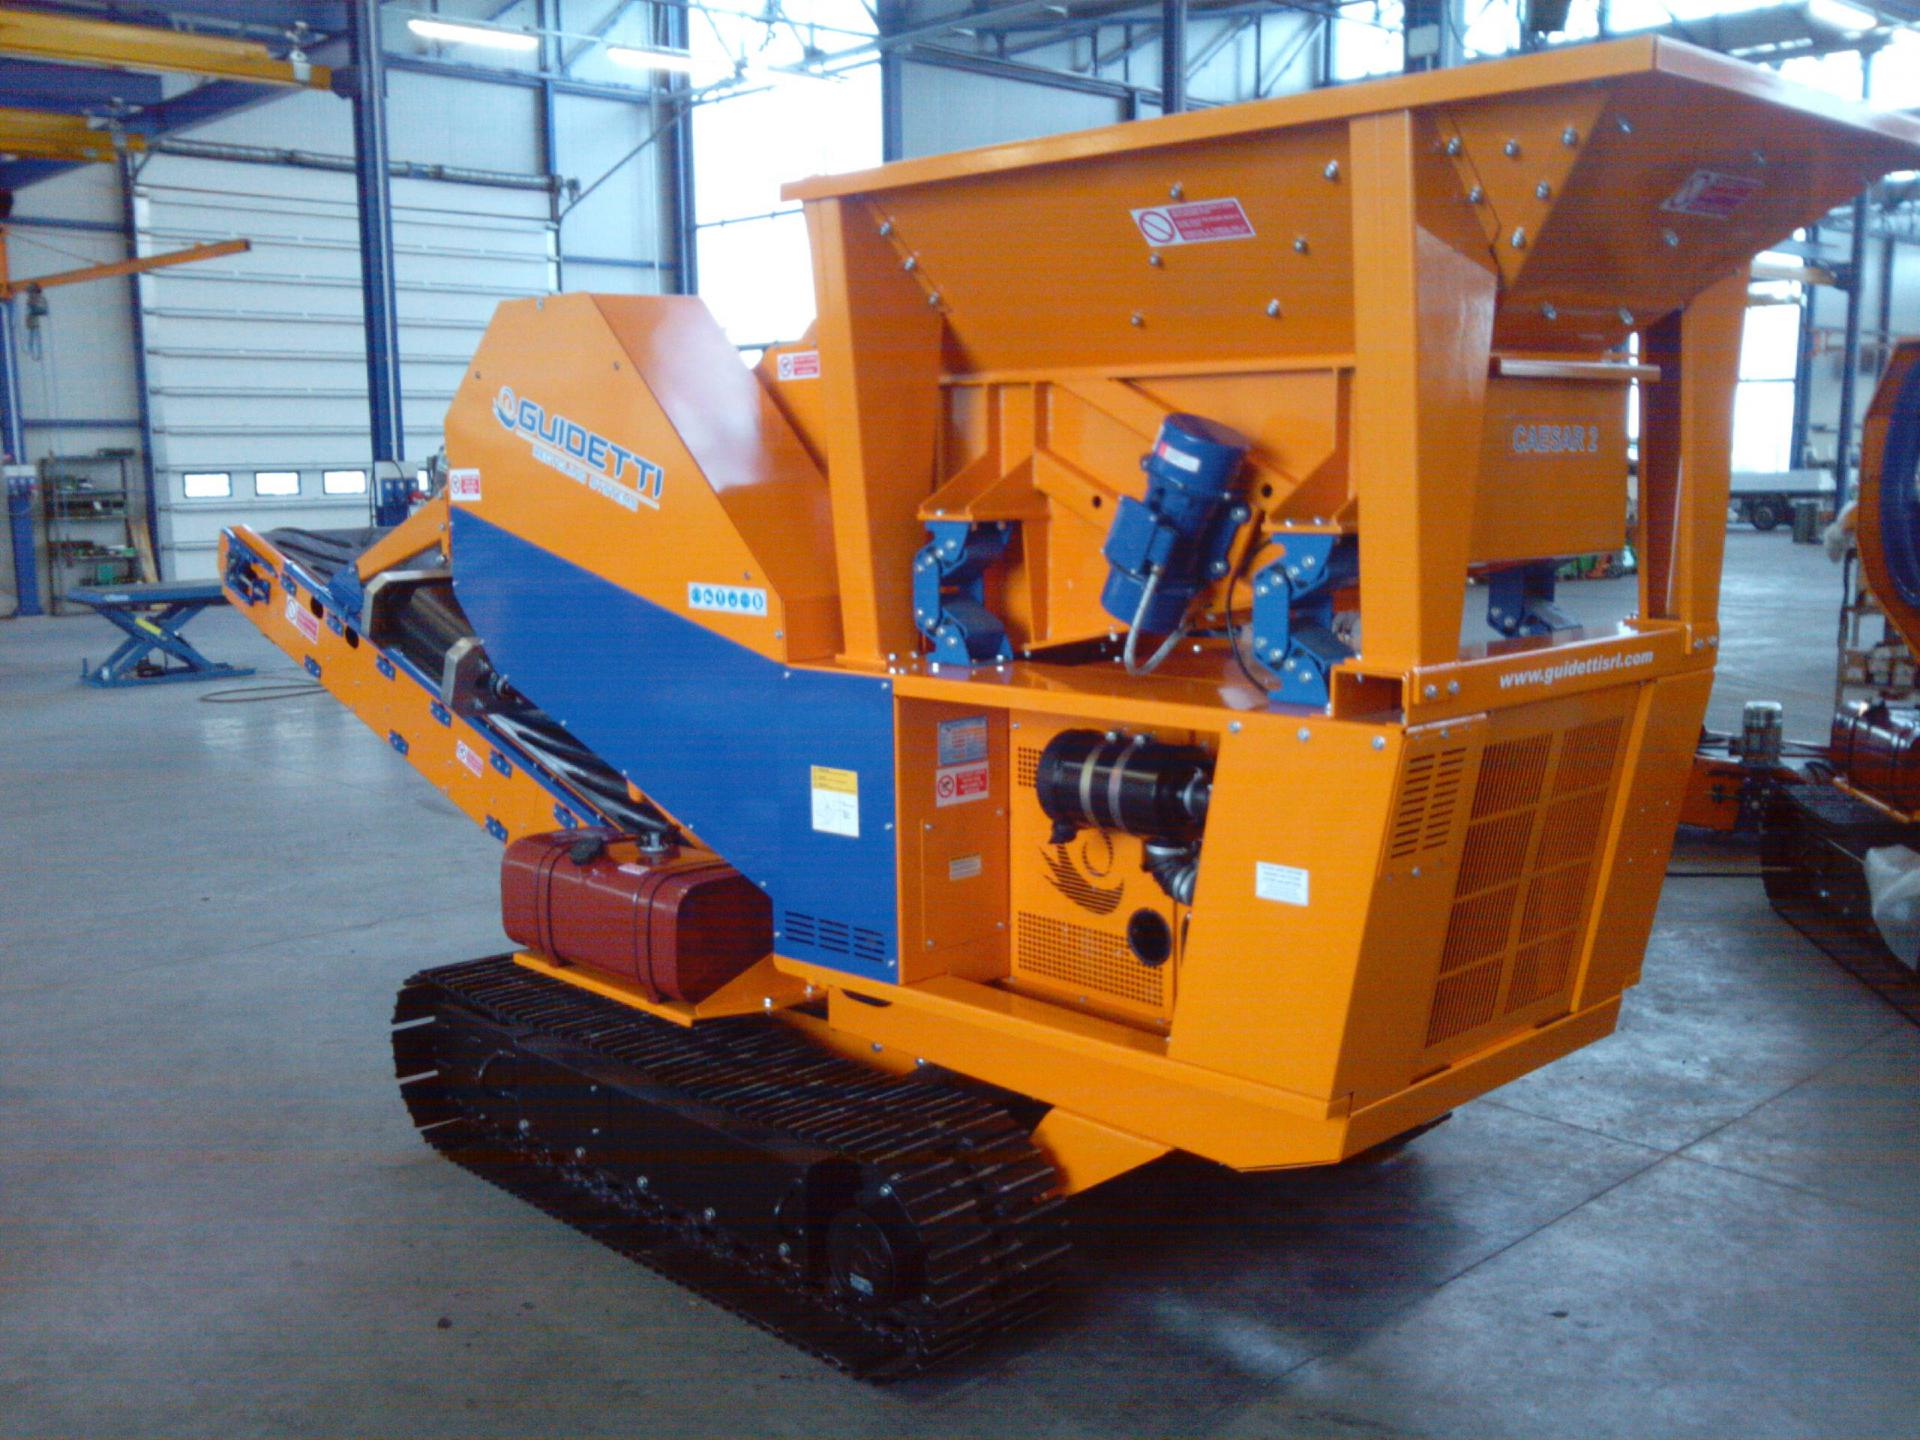 Radio-controlled autonome crawler crusher for demolition, etc.